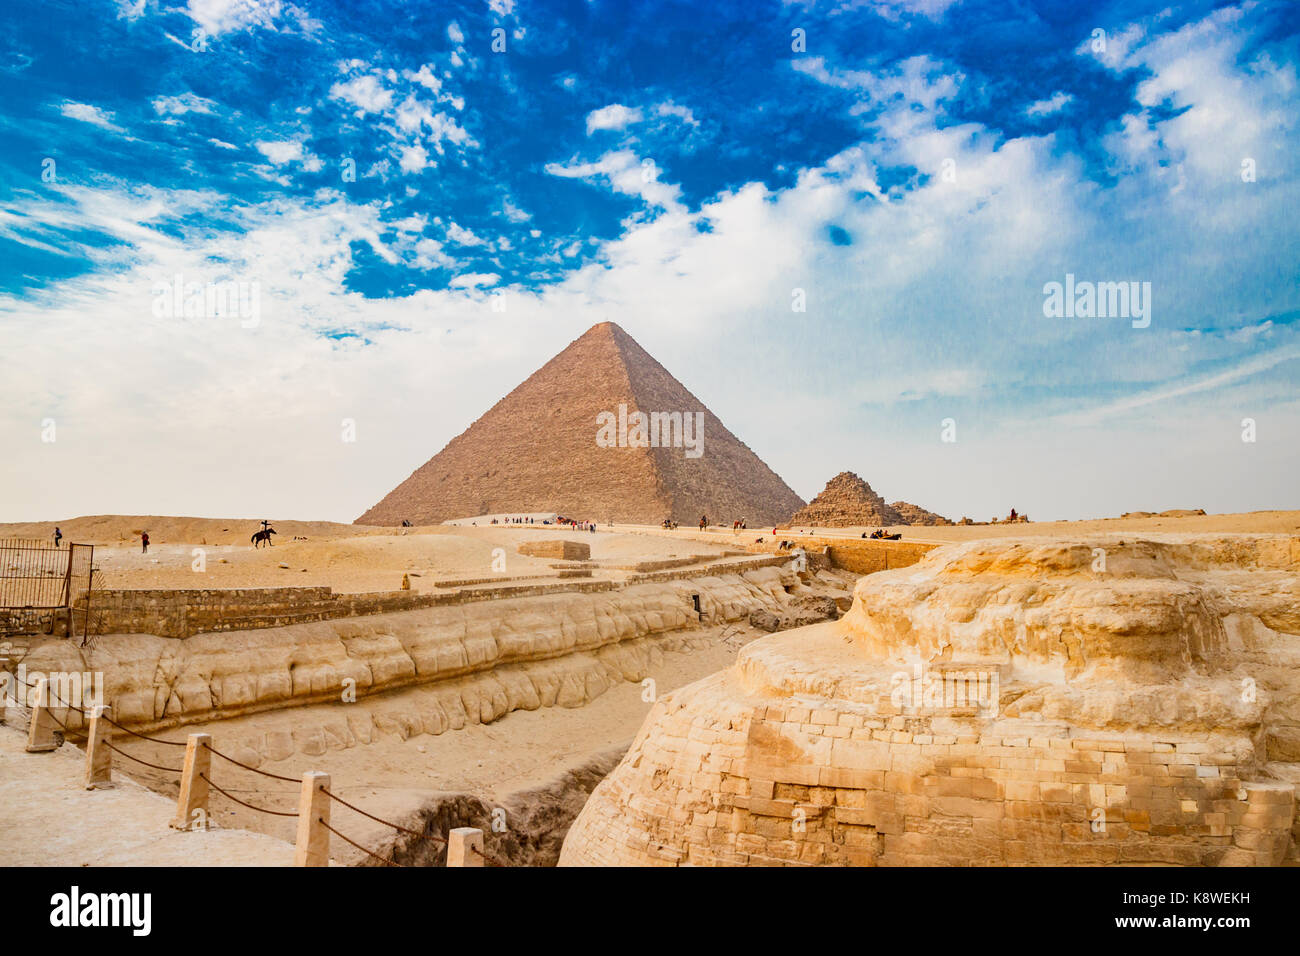 La pyramide au Caire, Egypte Photo Stock